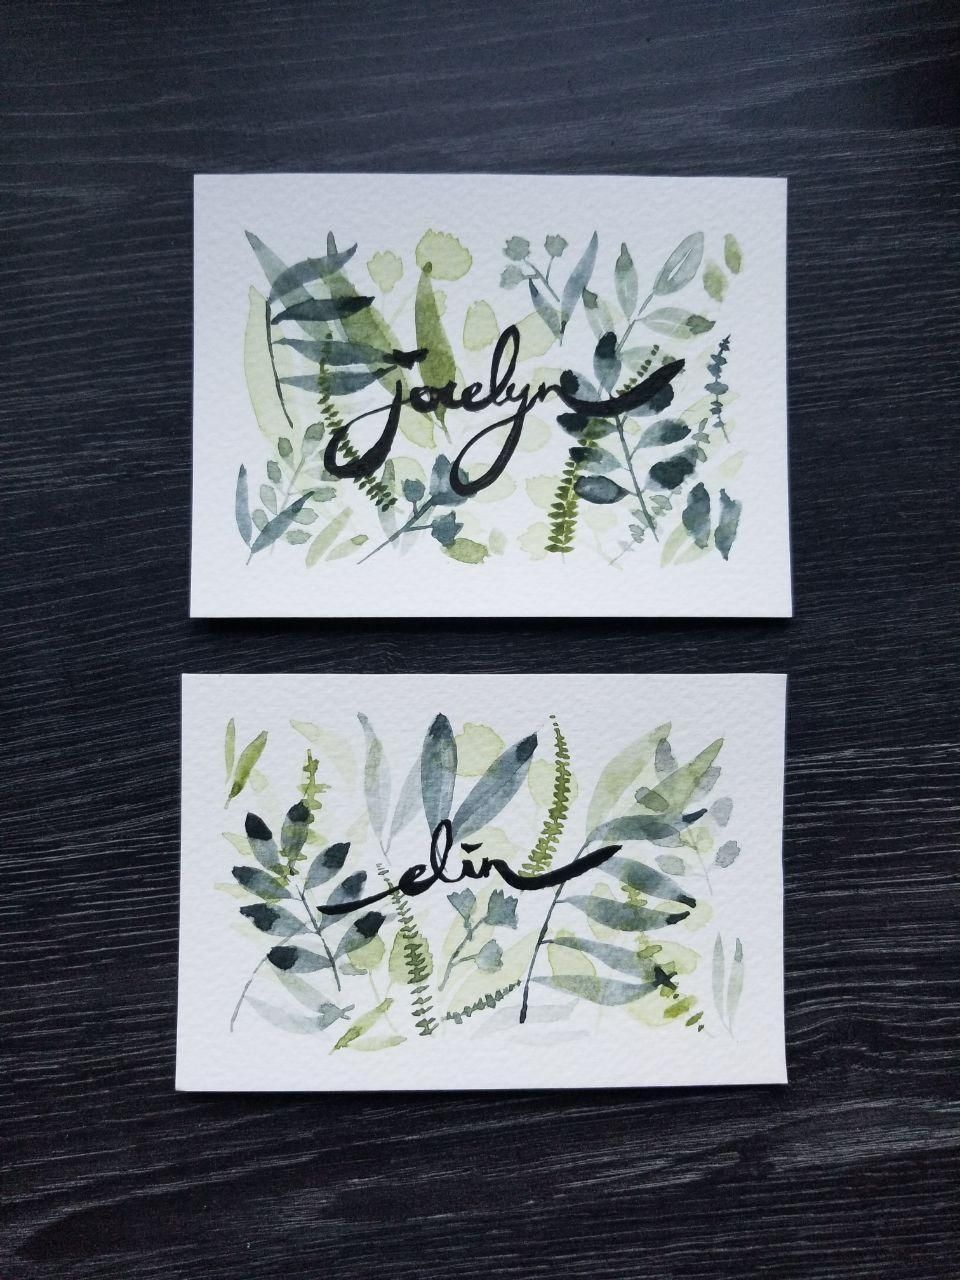 cards for family - image 1 - student project